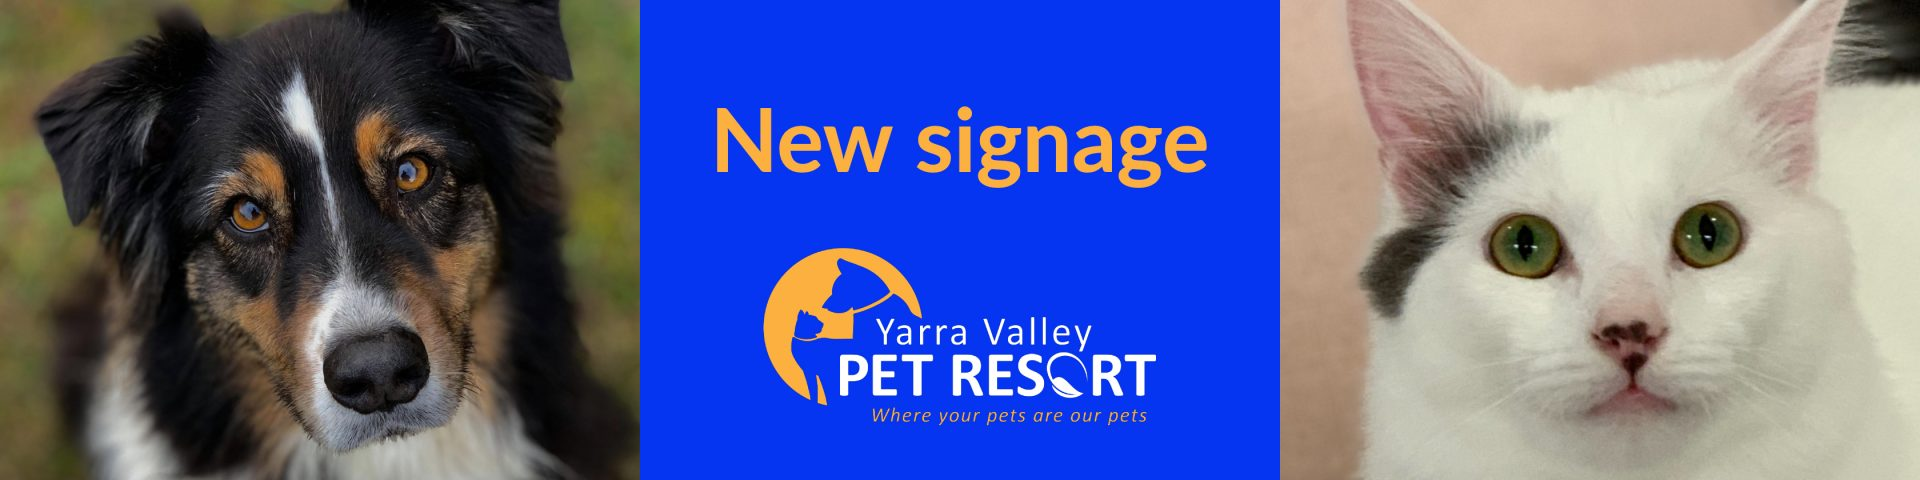 New Signage Complete – YV Pet Resort Badger Creek